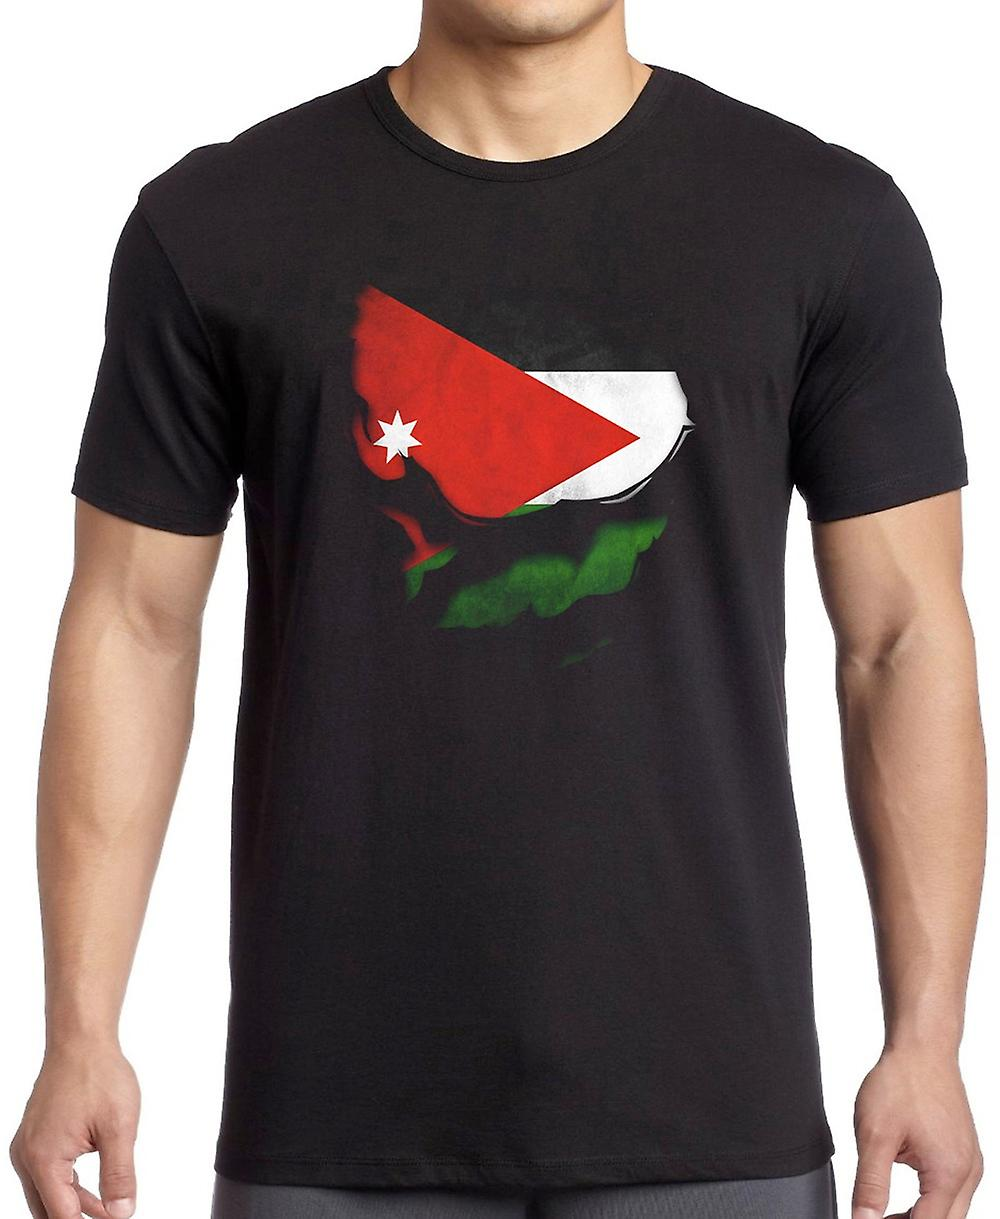 Jordan Jordanian Ripped Effect Under Shirt Women T Shirt